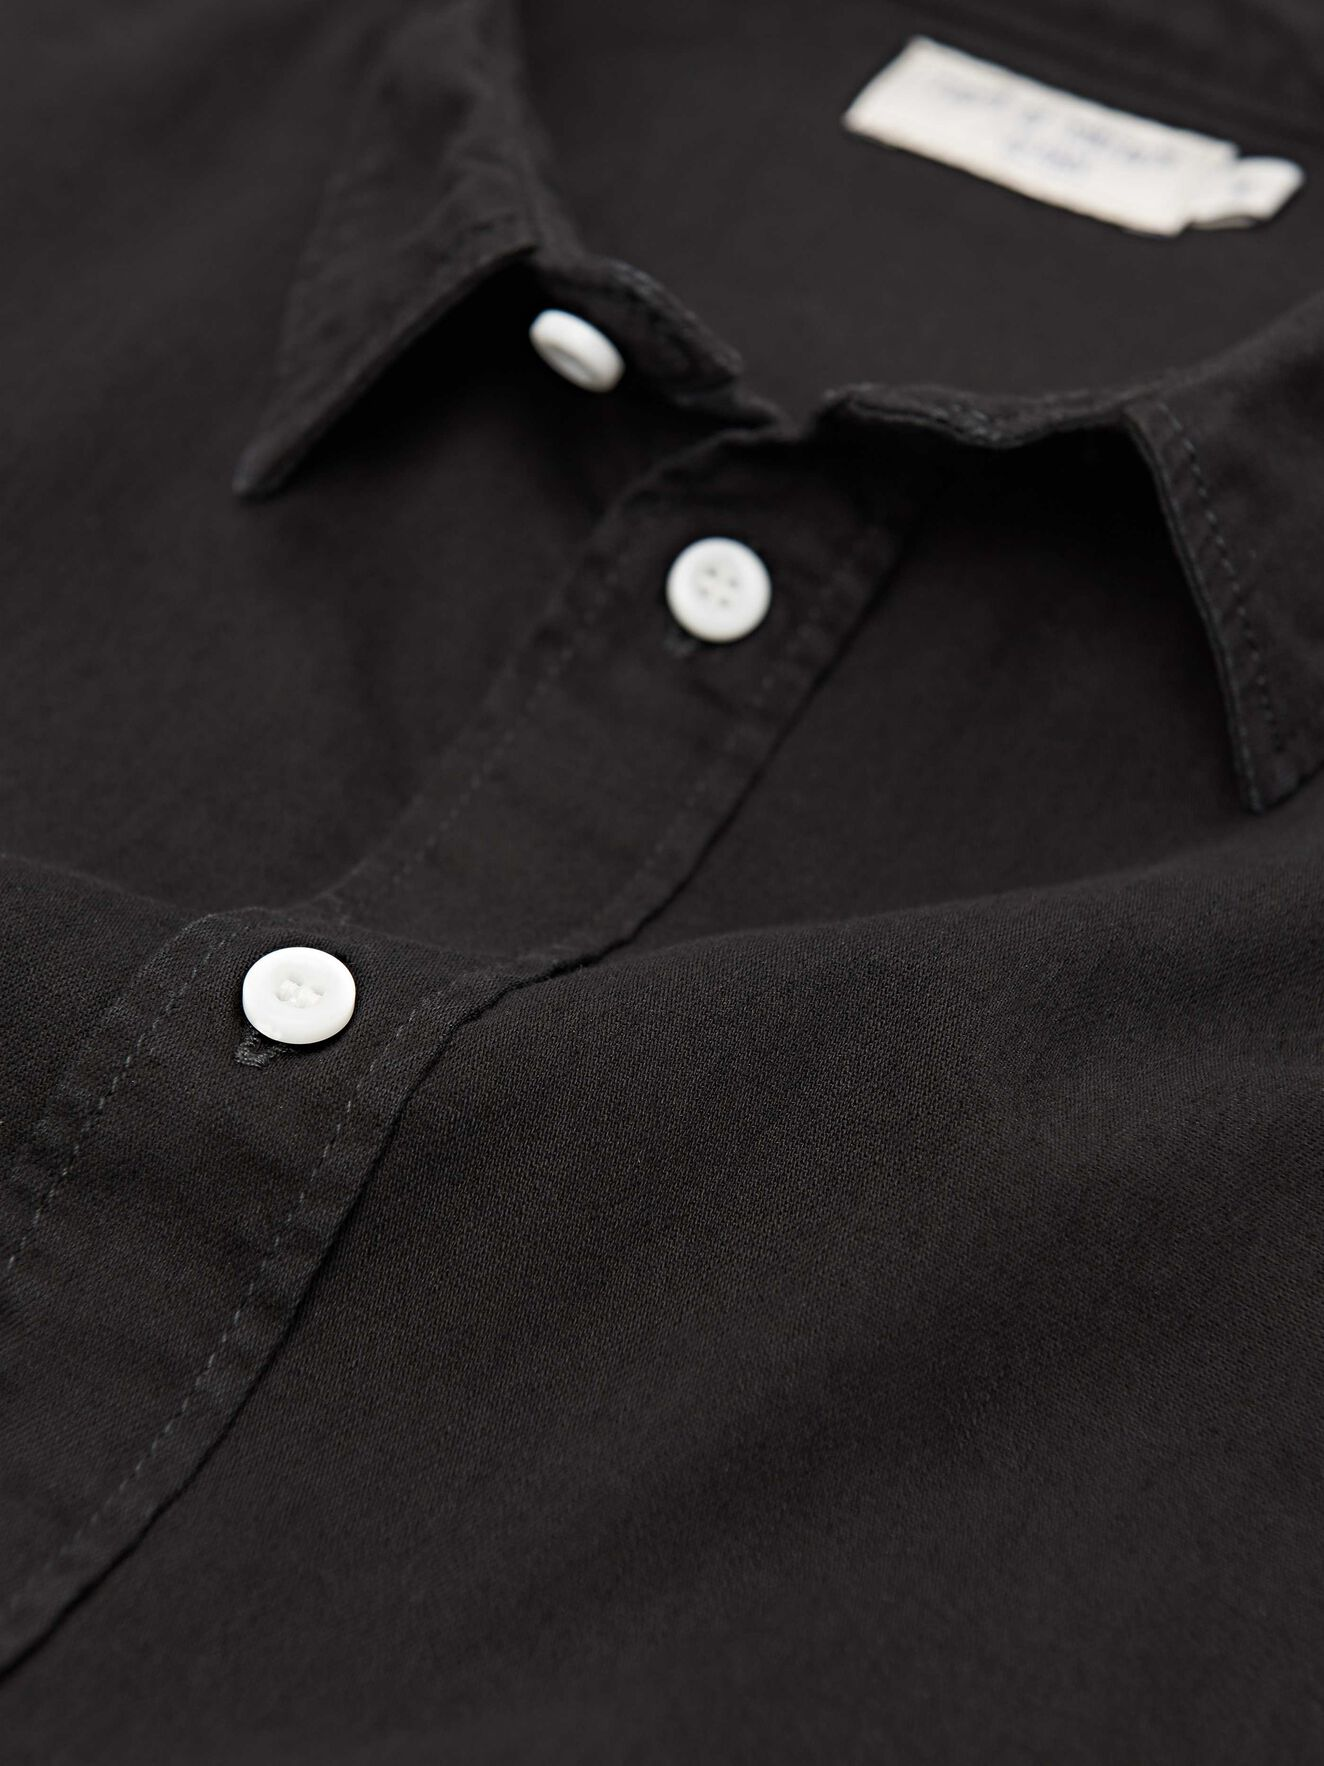 Pure Np Shirt in Black from Tiger of Sweden